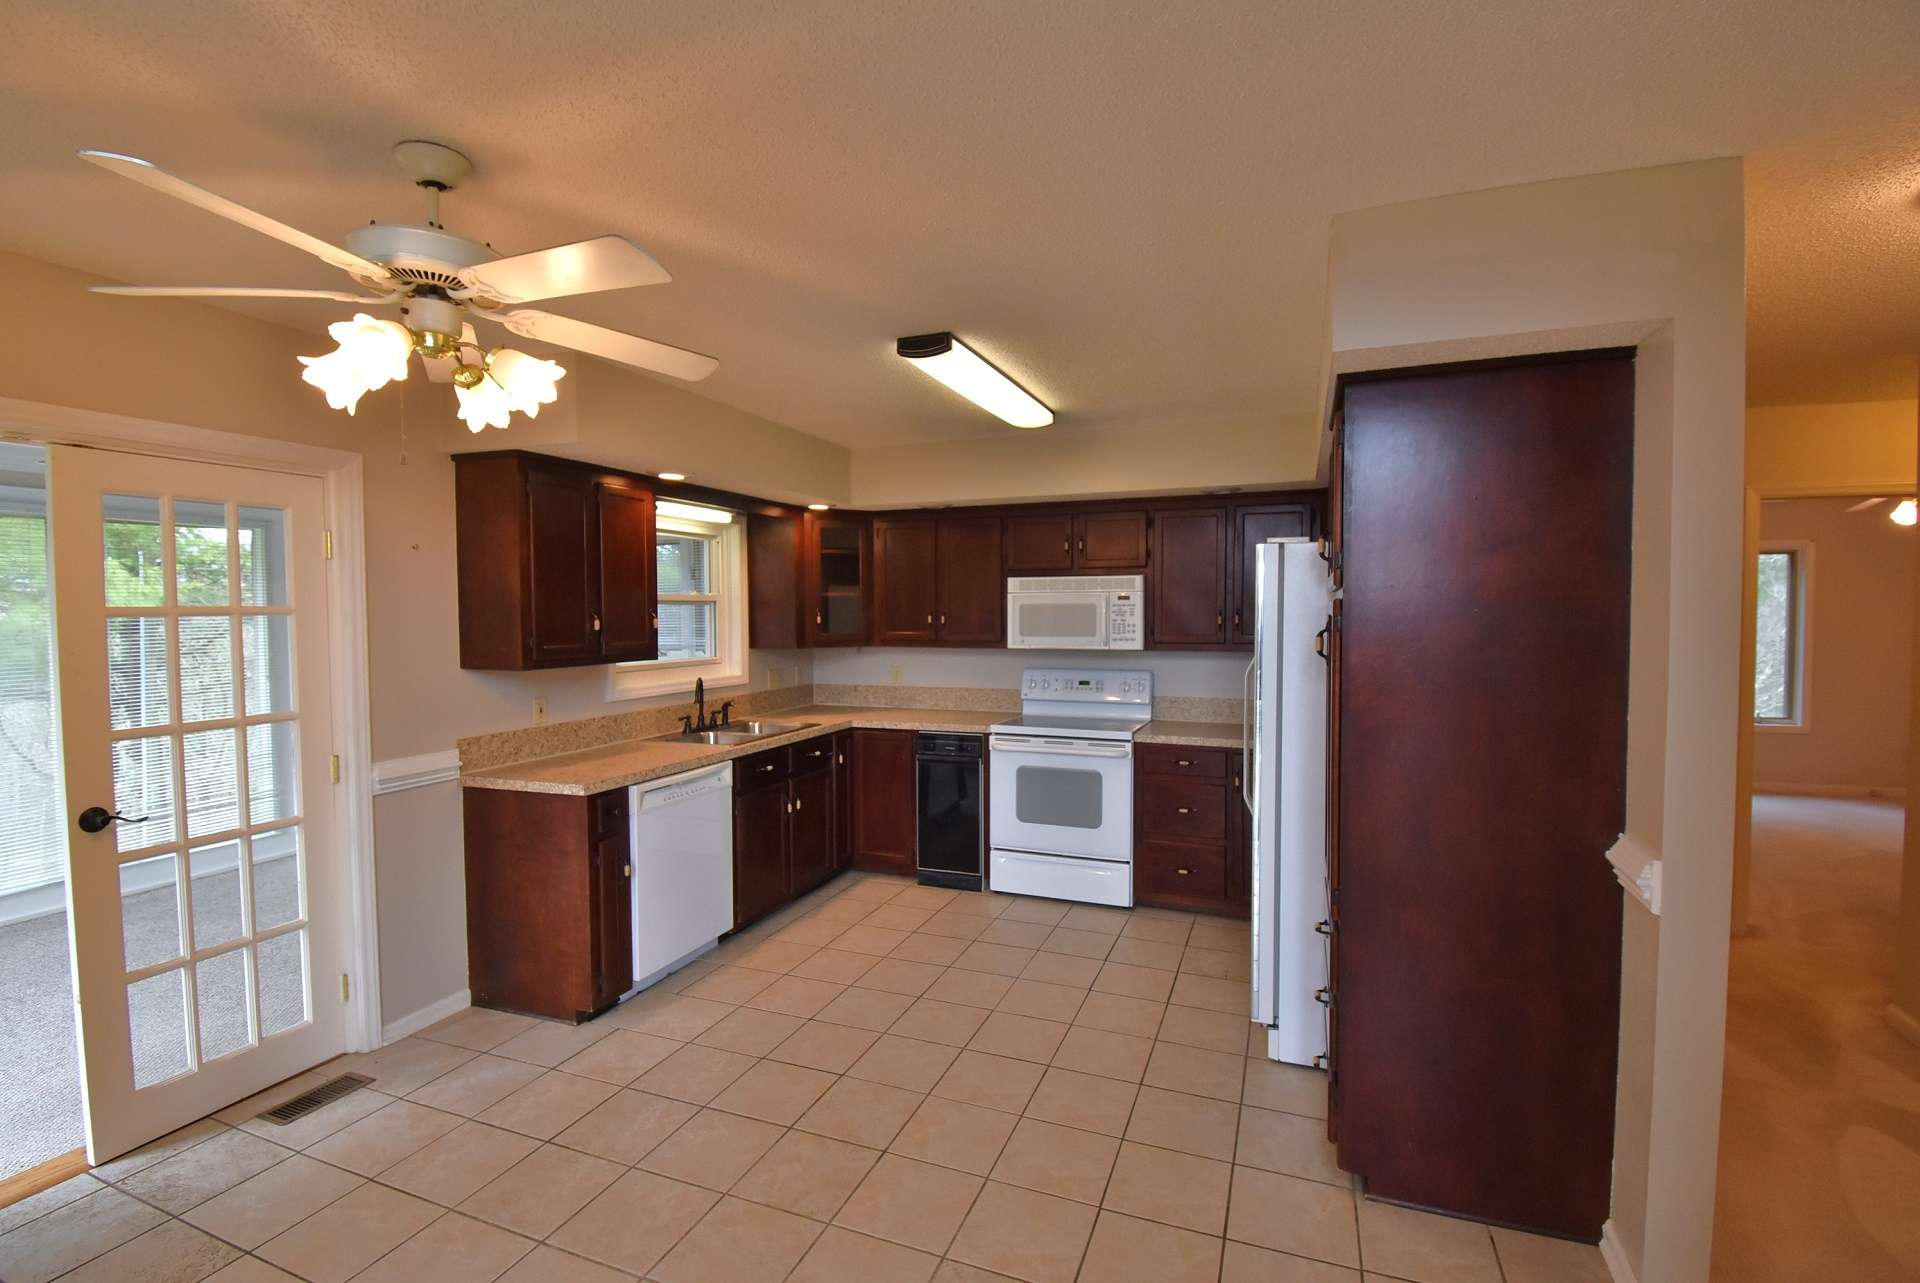 The kitchen is open to the dining area and offers easy access to the sunroom.